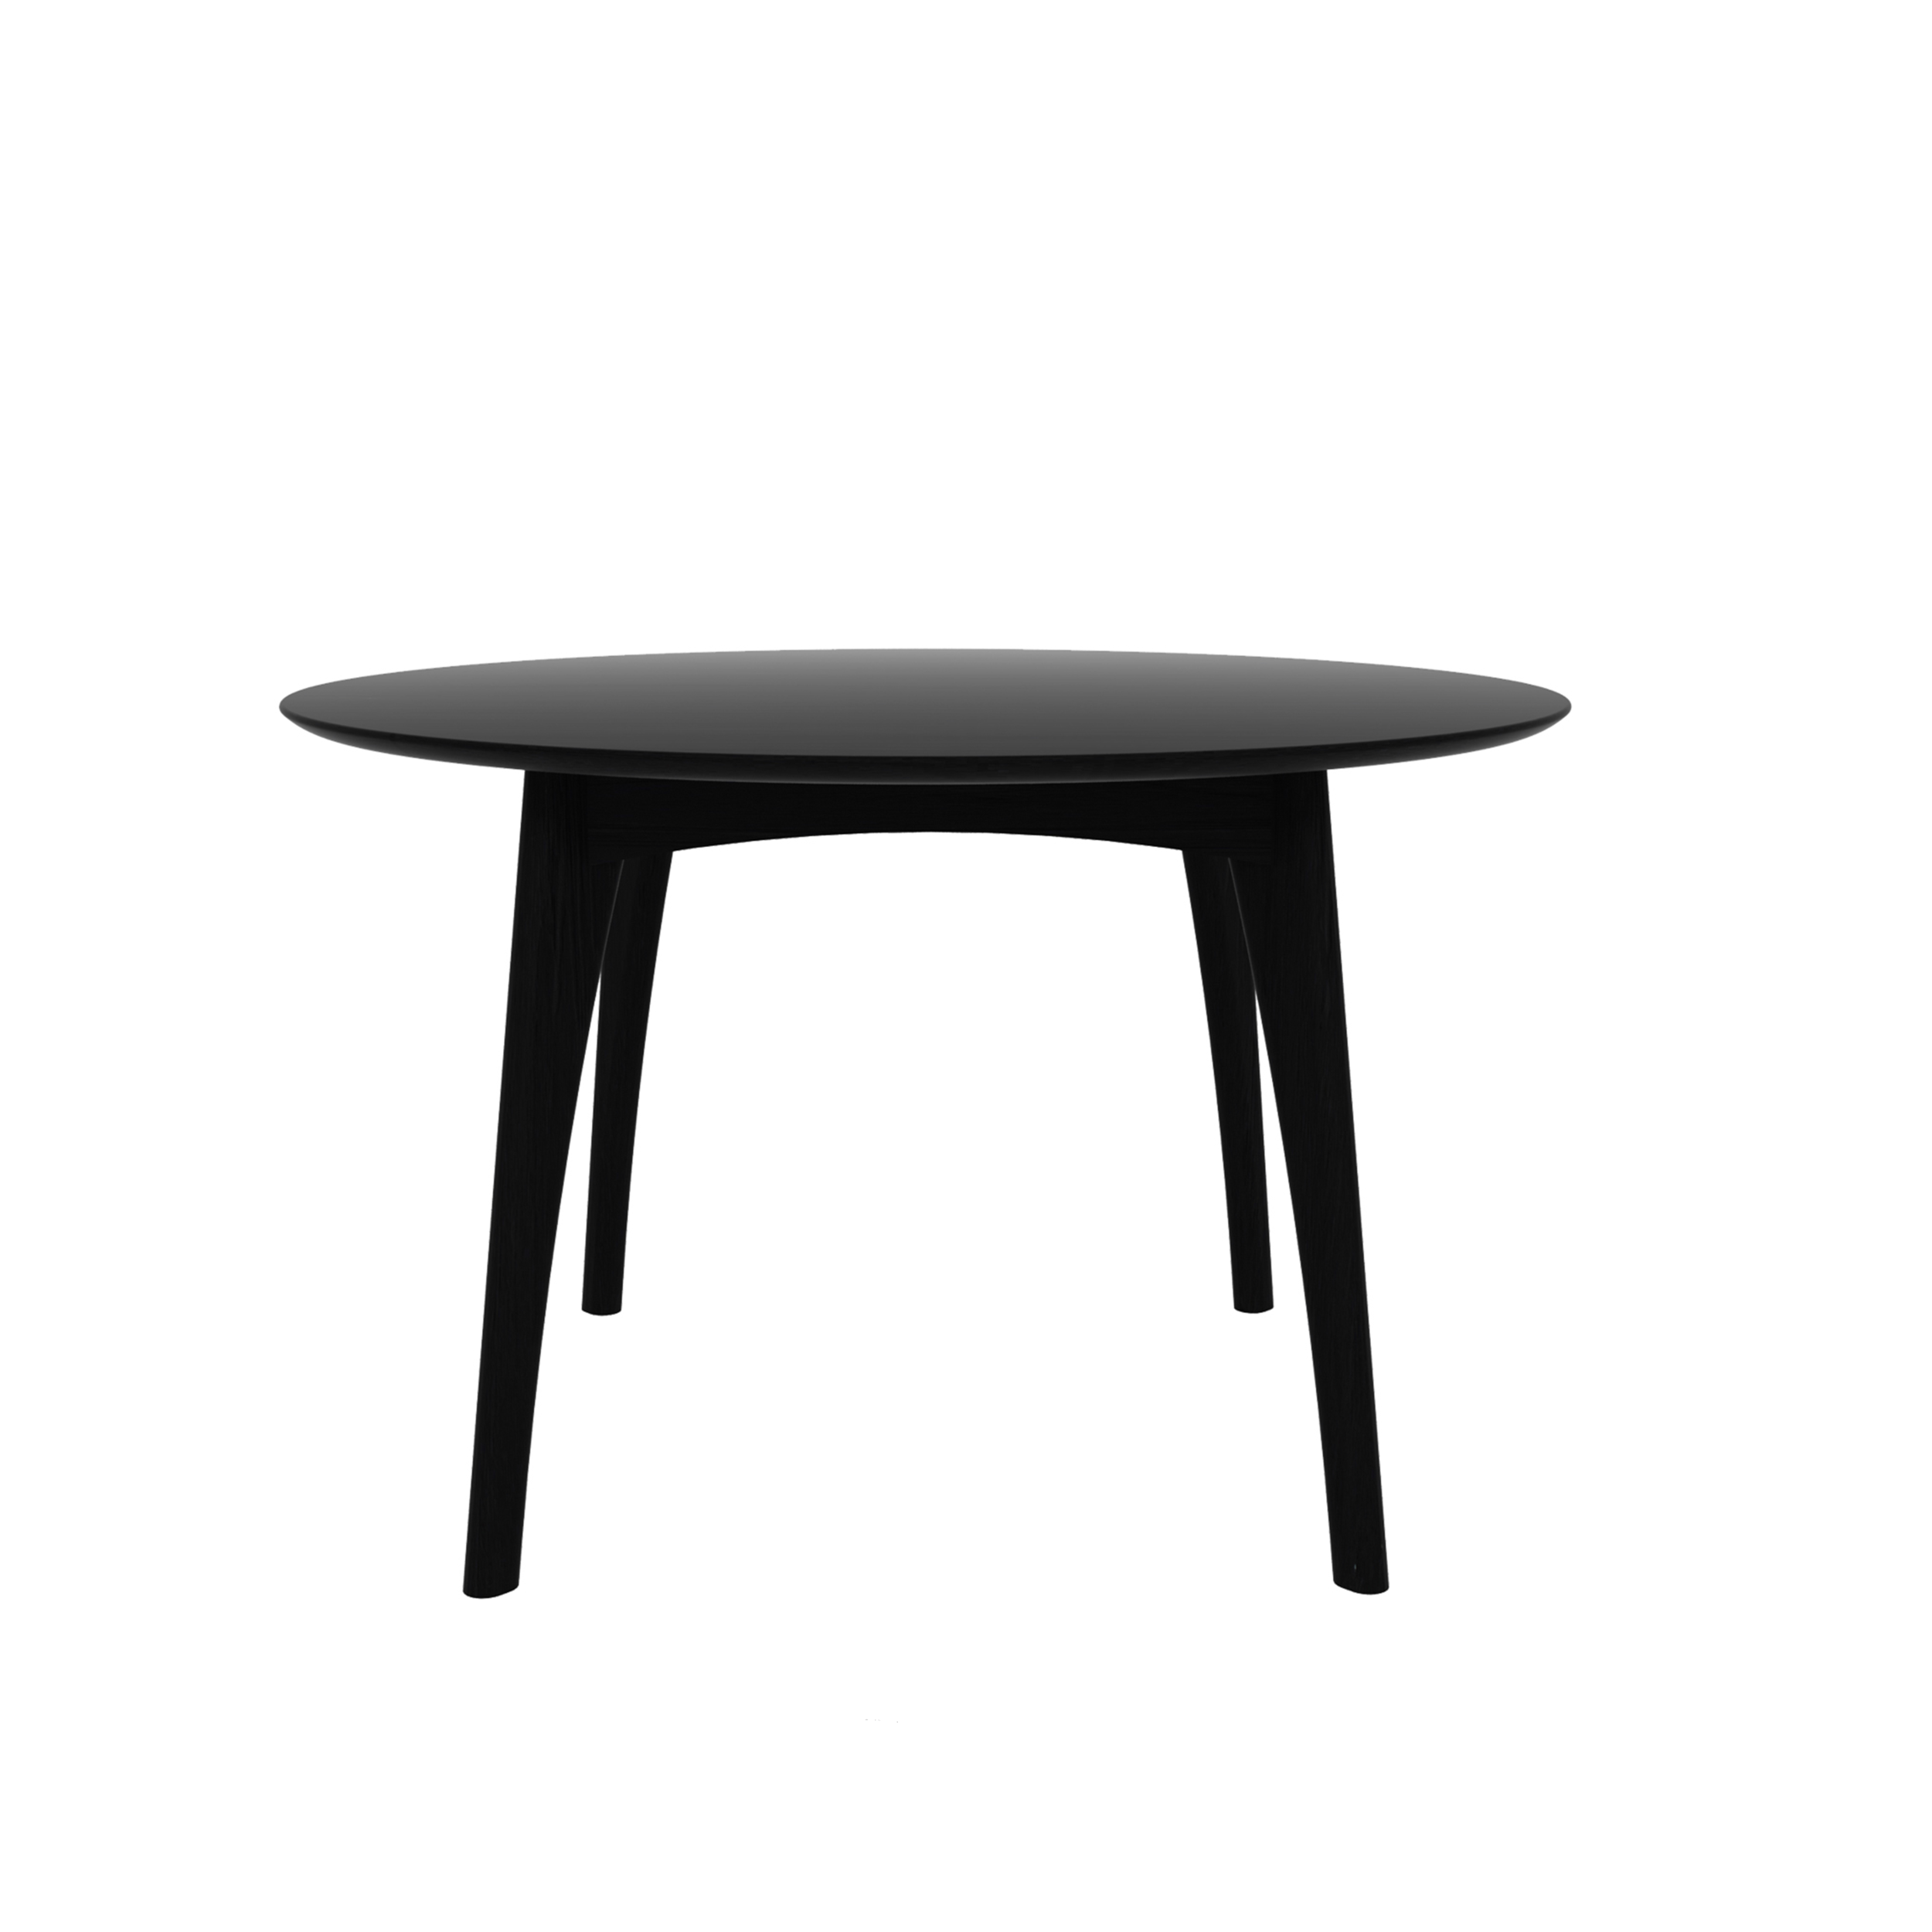 53038 Osso round table high - Oak black.jpg.png